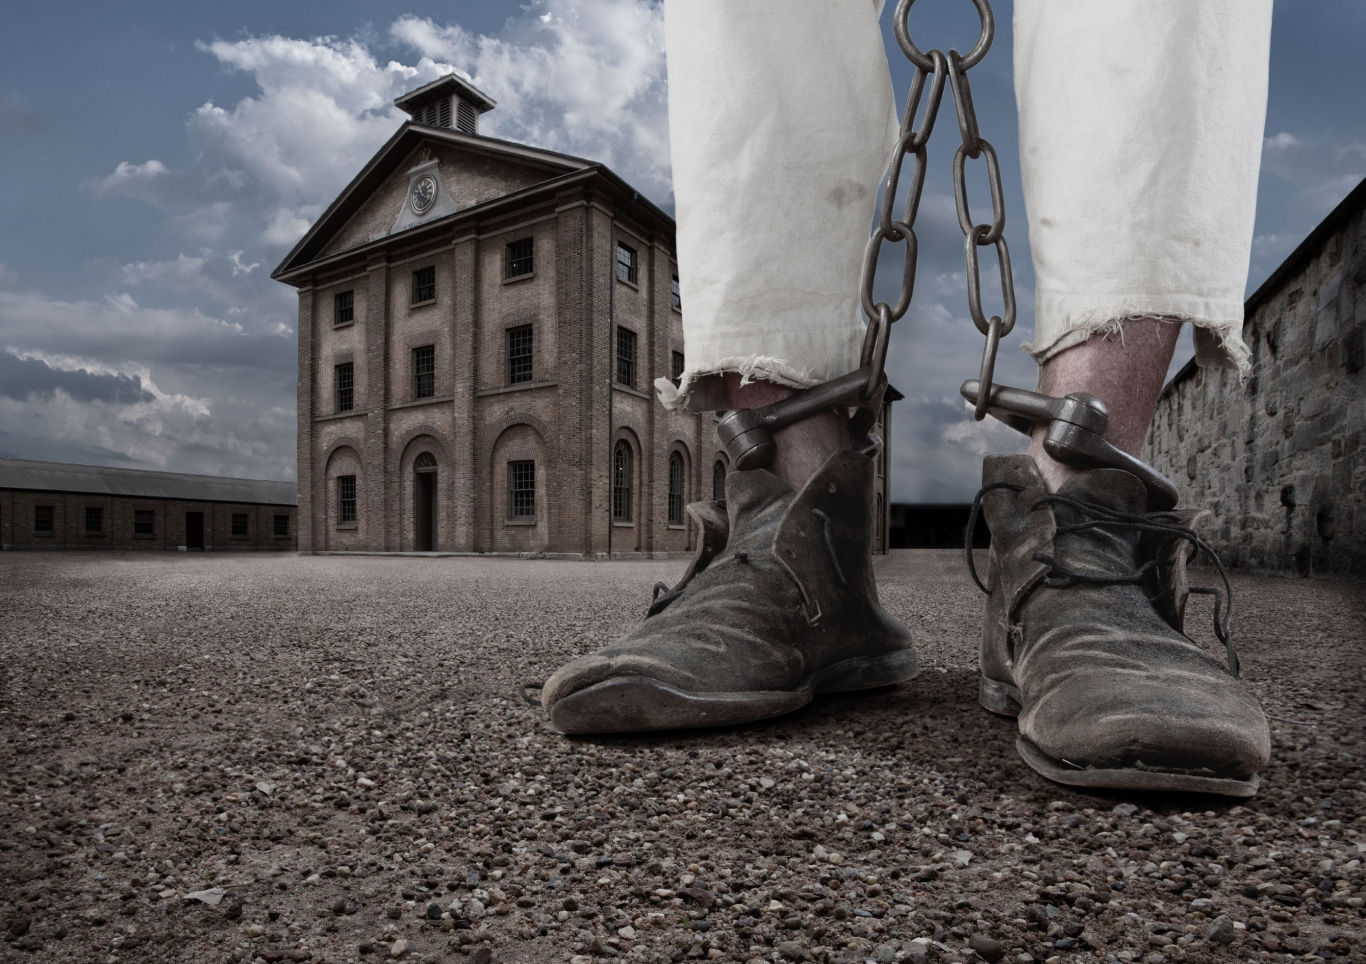 Image of chained legs (boots and white trousers visible) with Hyde Park Barracks in background.